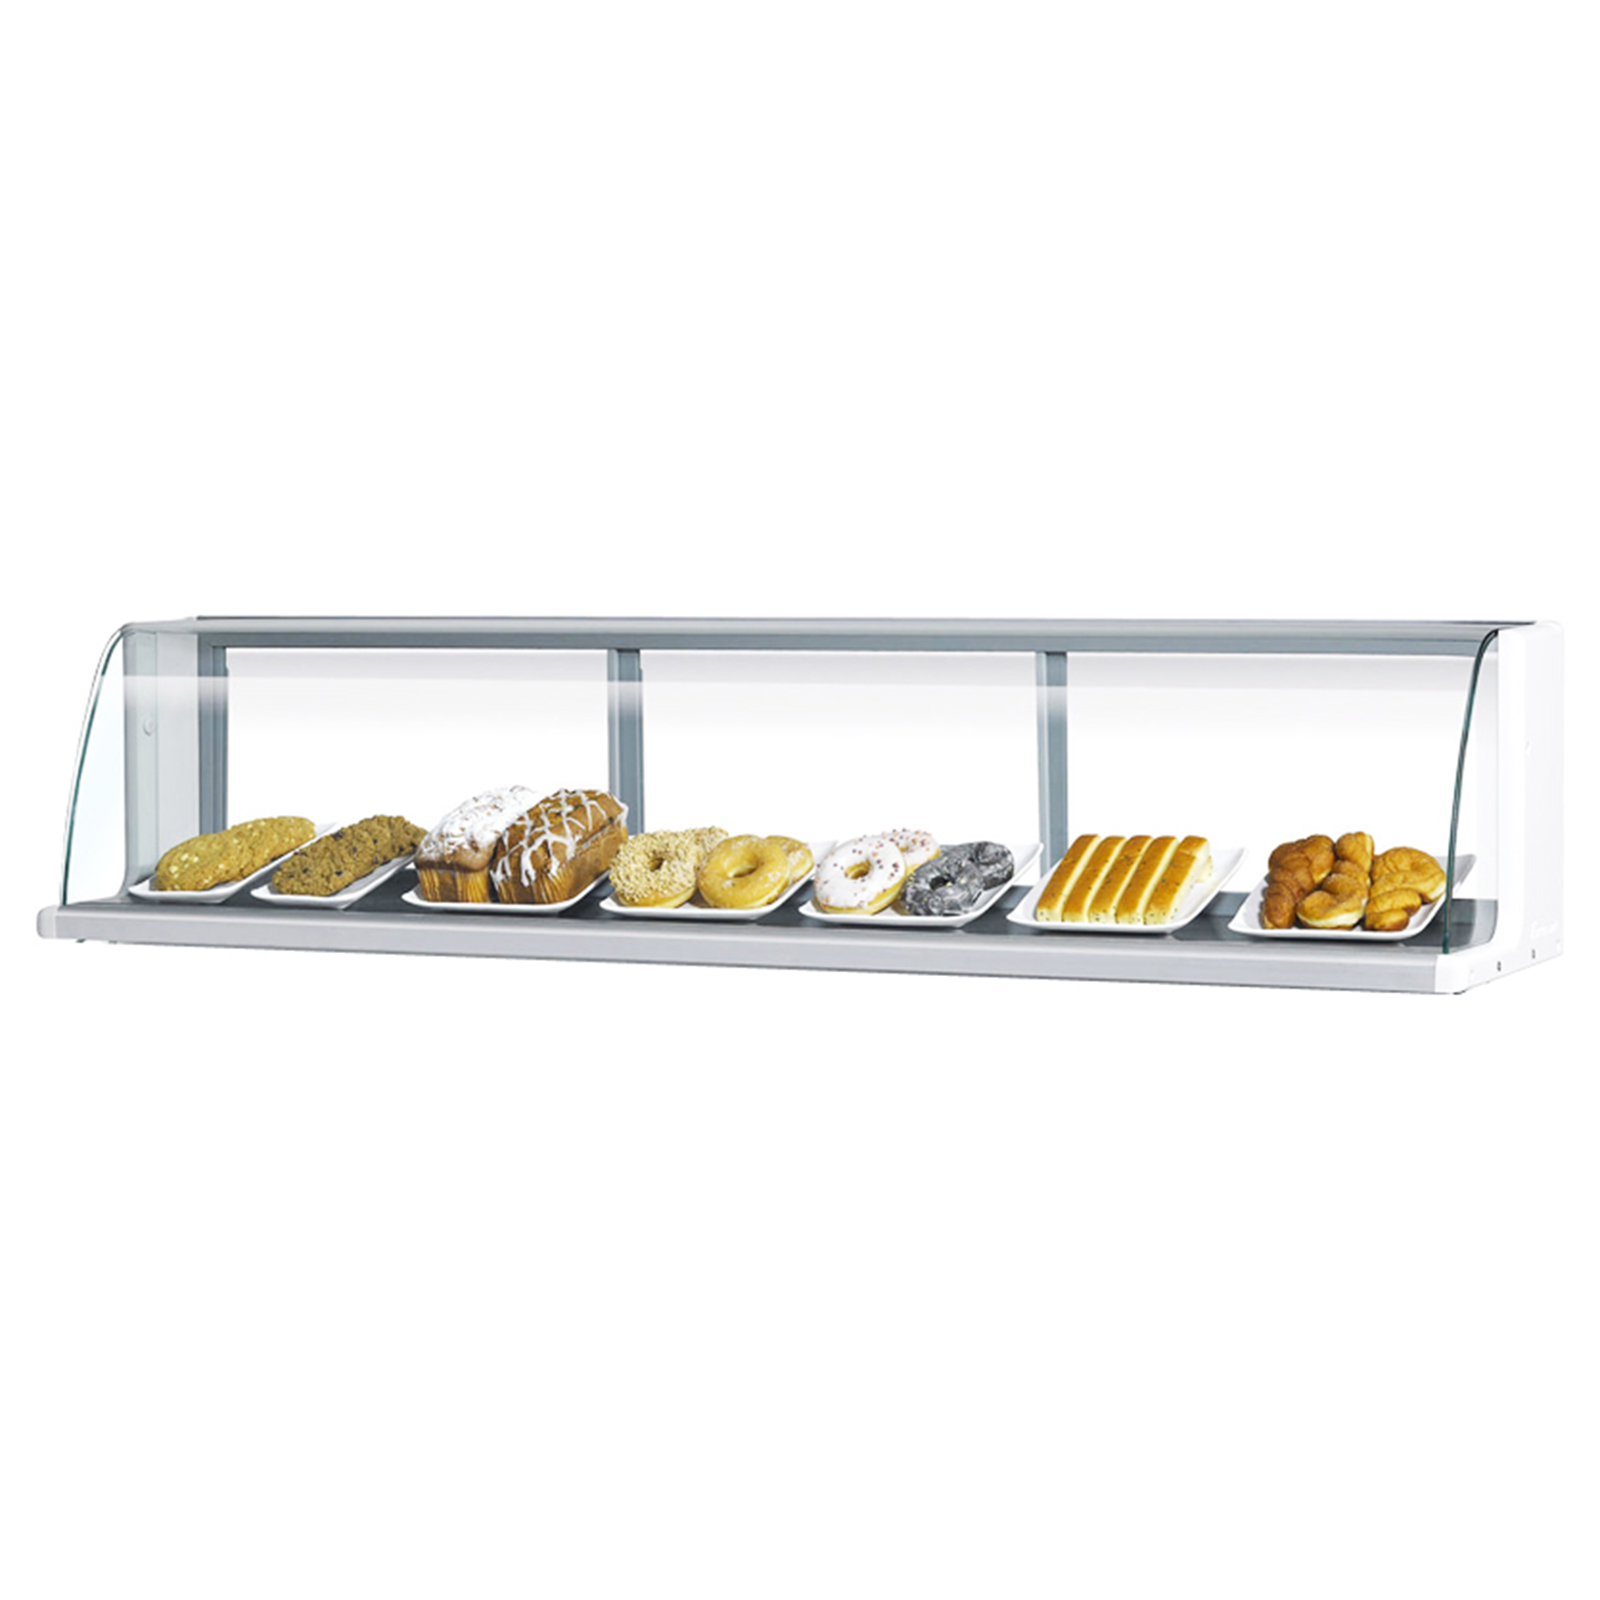 Turbo Air TOMD-60LW(B) display case, non-refrigerated countertop